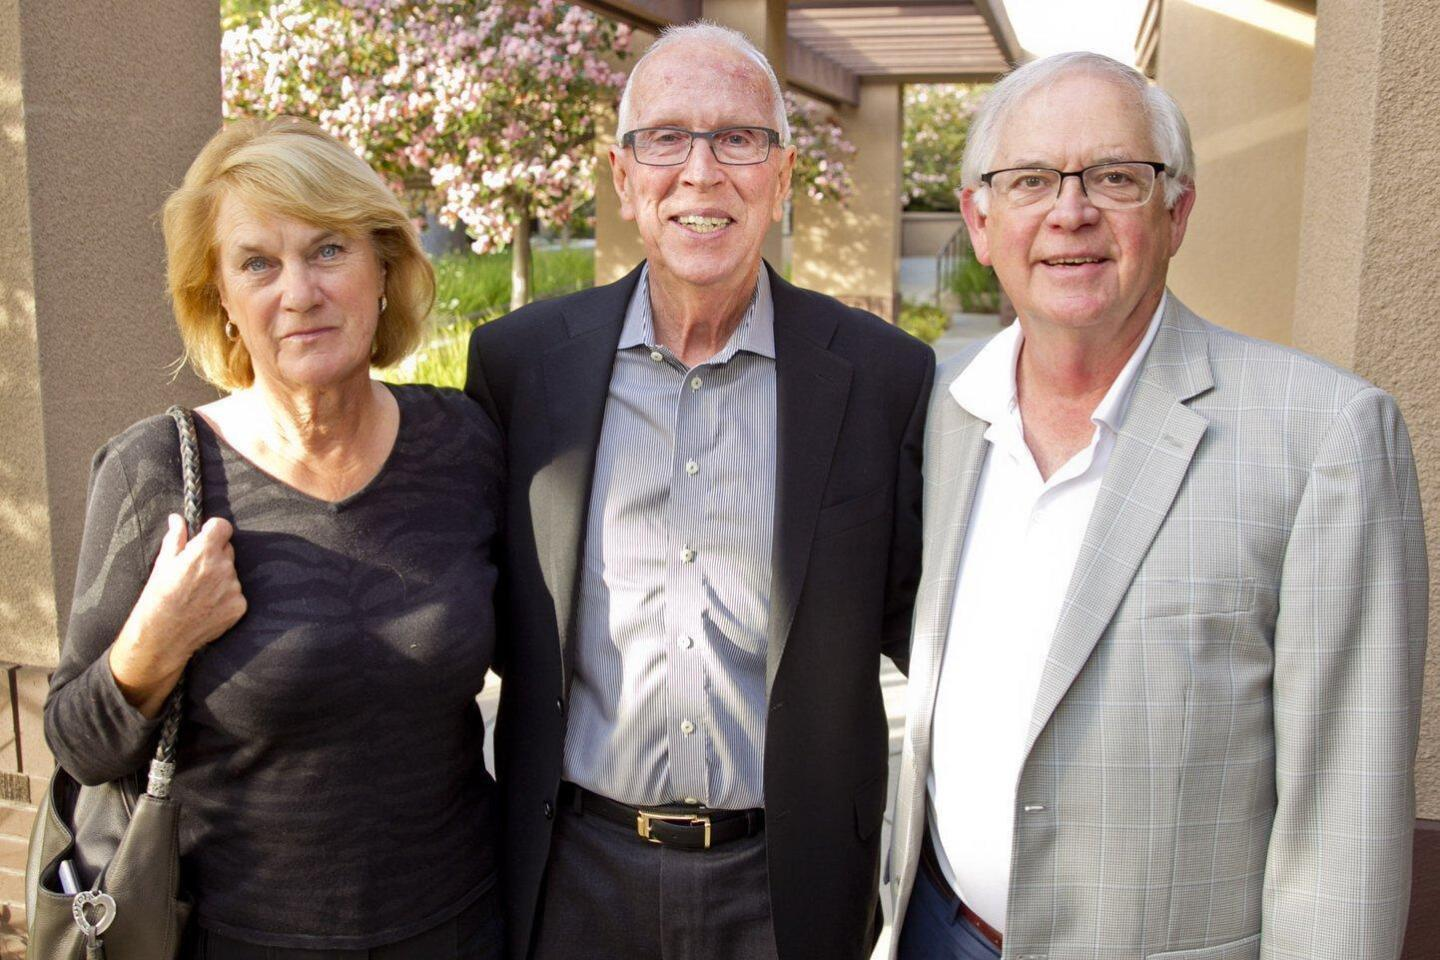 Accomplished retired SDSU Basketball Coach Steve Fisher speaks at Village Viewpoints event